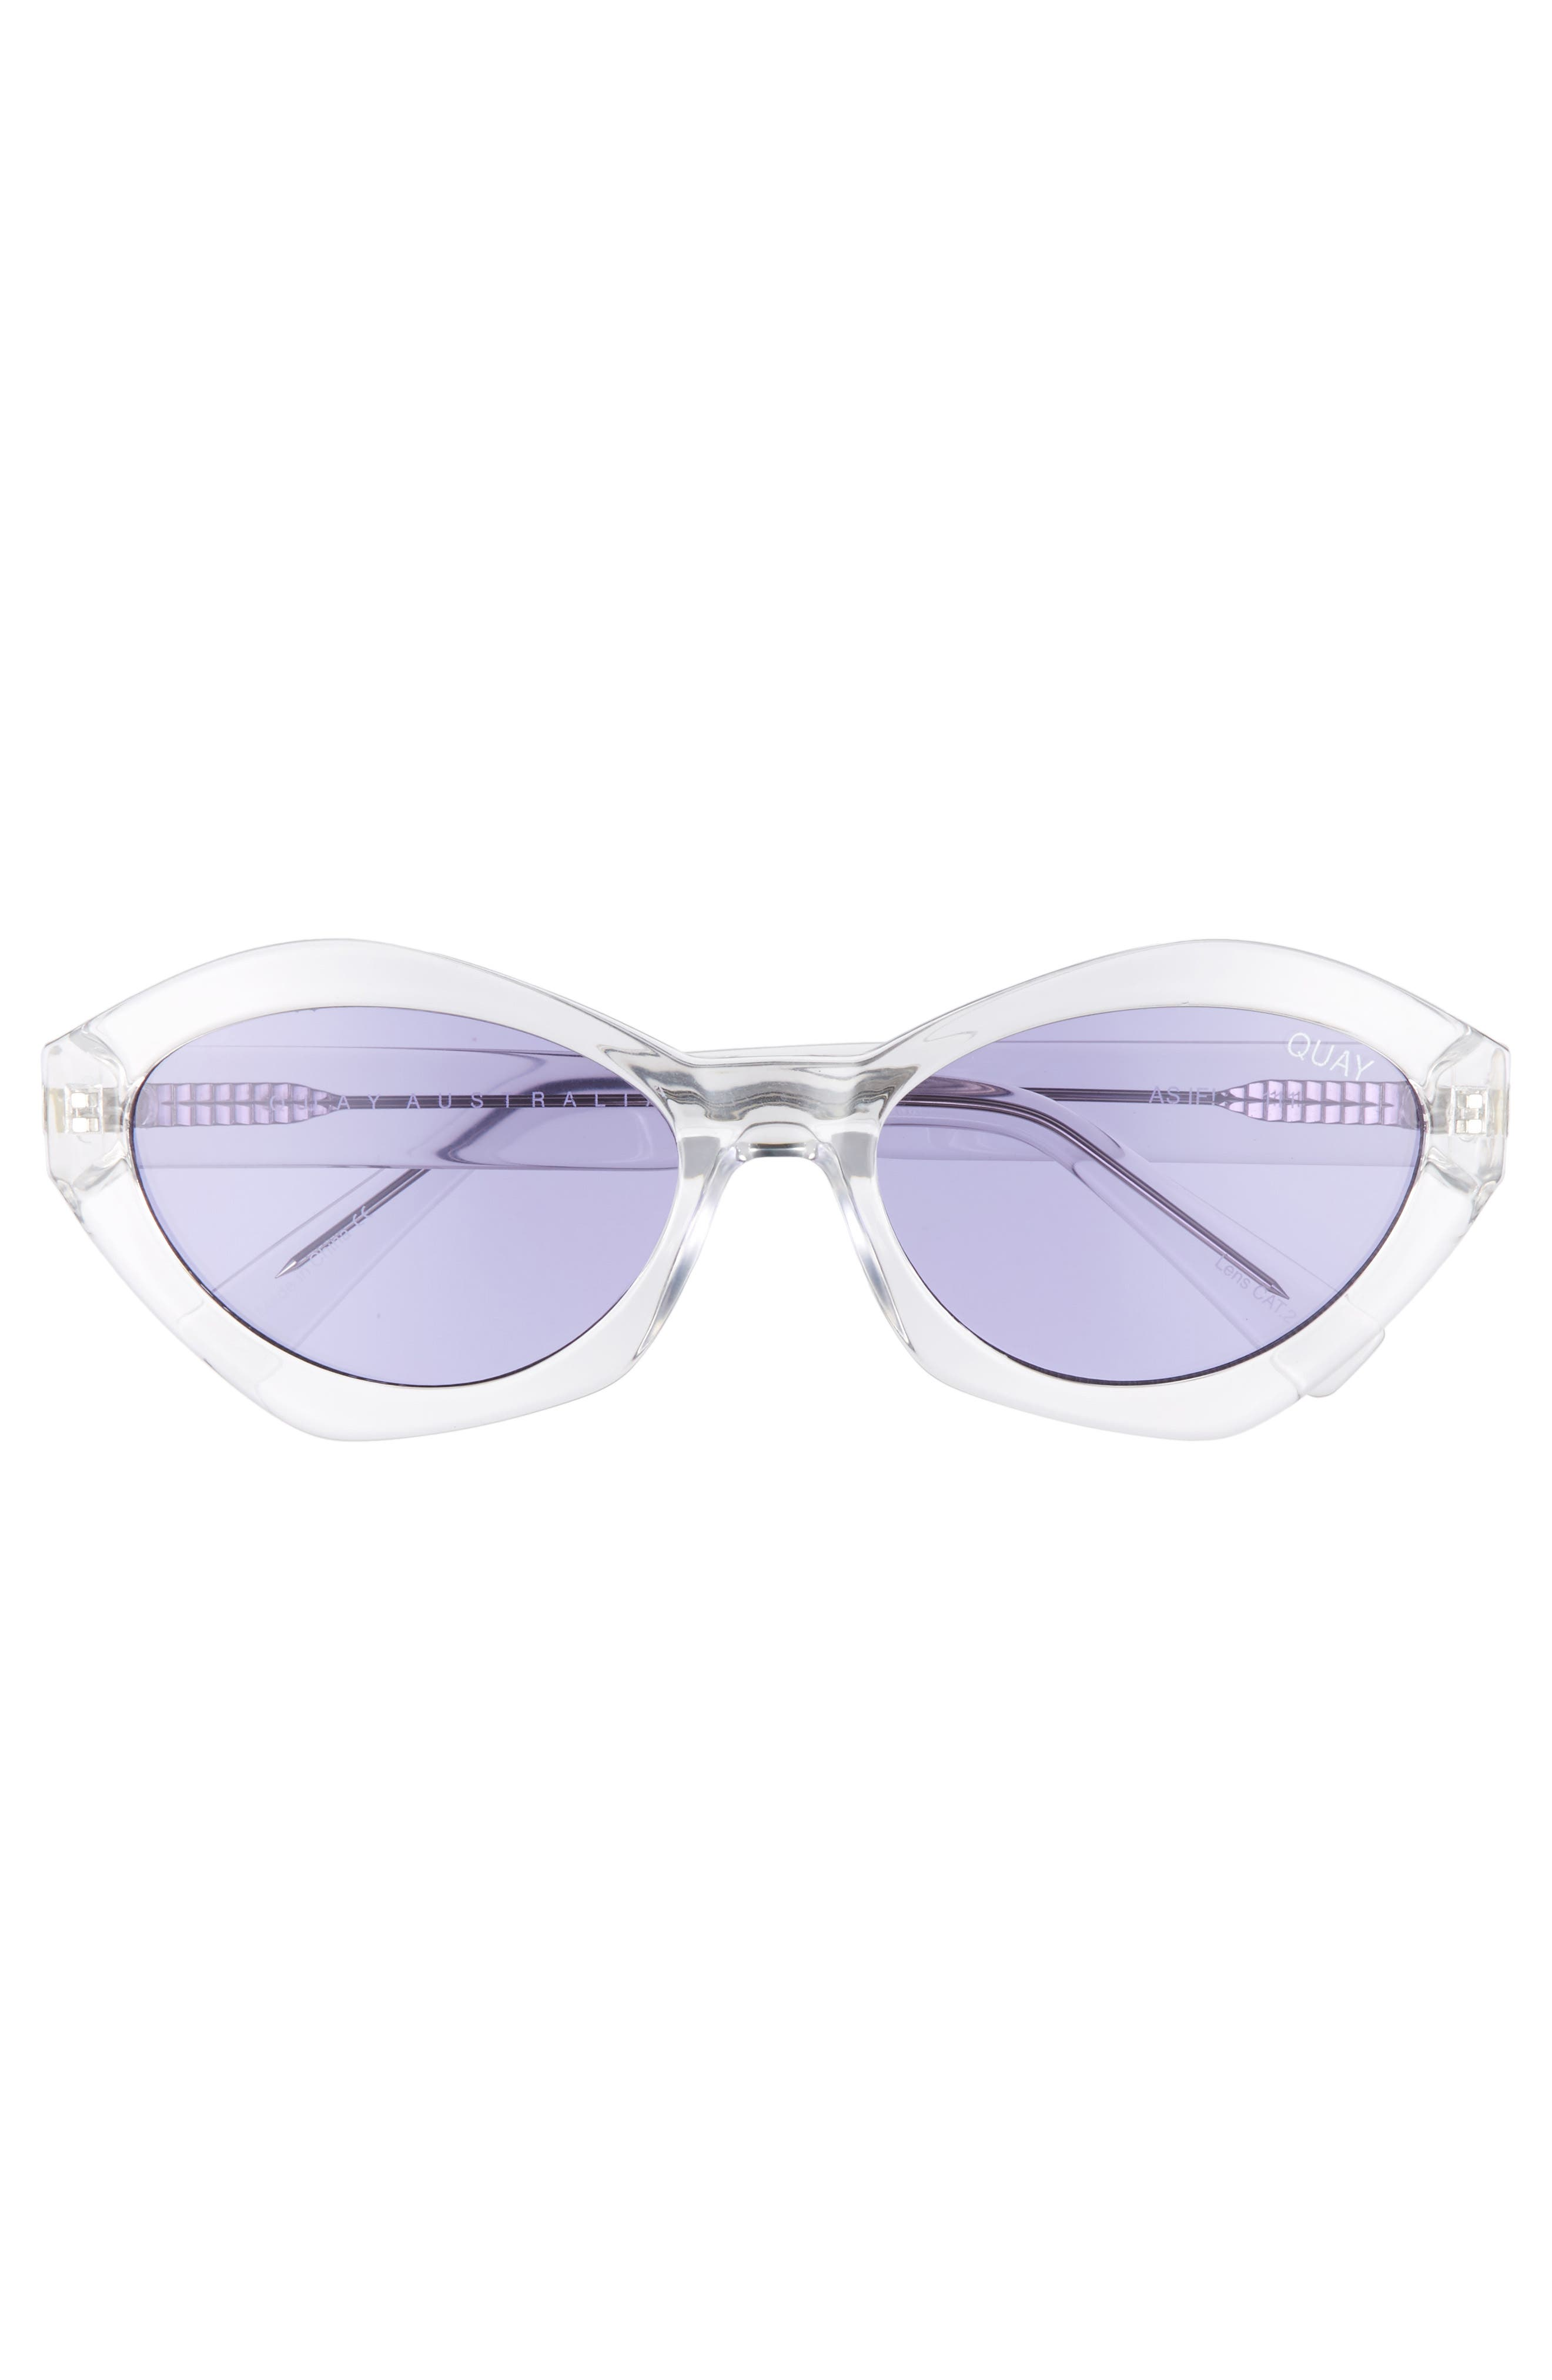 54mm As If Oval Sunglasses by QUAY AUSTRALIA, available on nordstrom.com Candice Swanepoel Sunglasses Exact Product